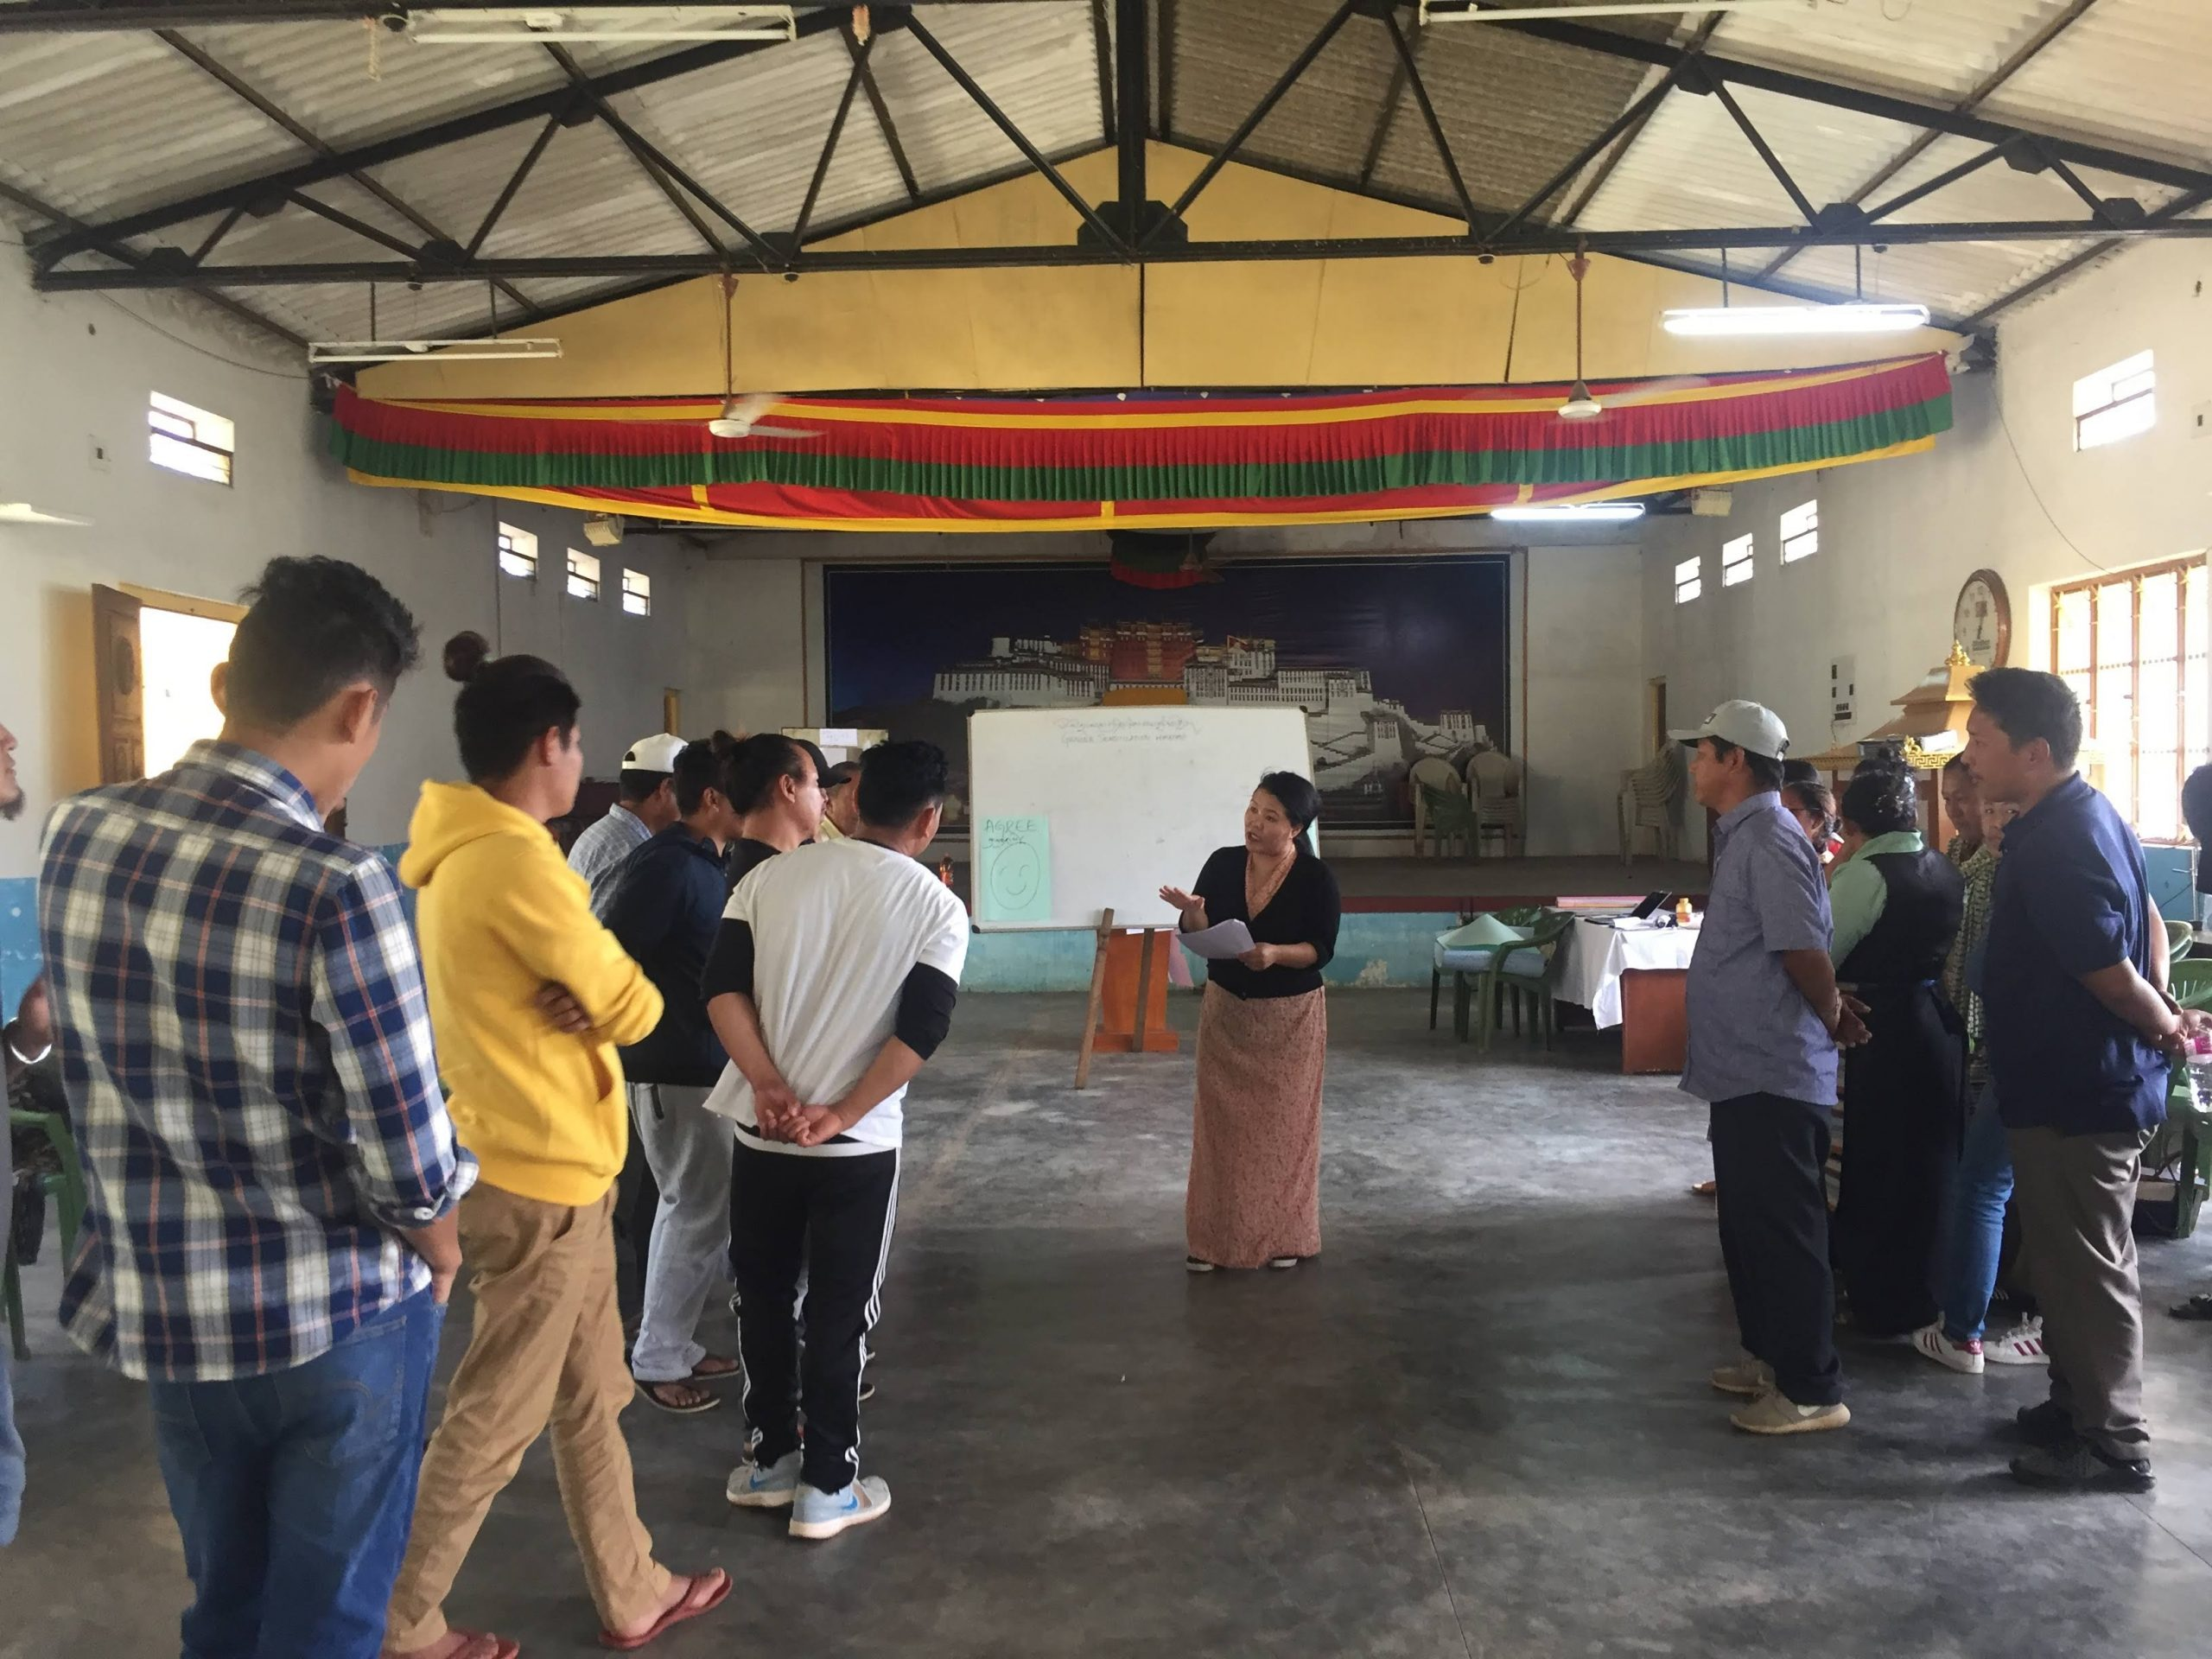 Tsering Kyi leading a gender education session with men of the Tibetan community.